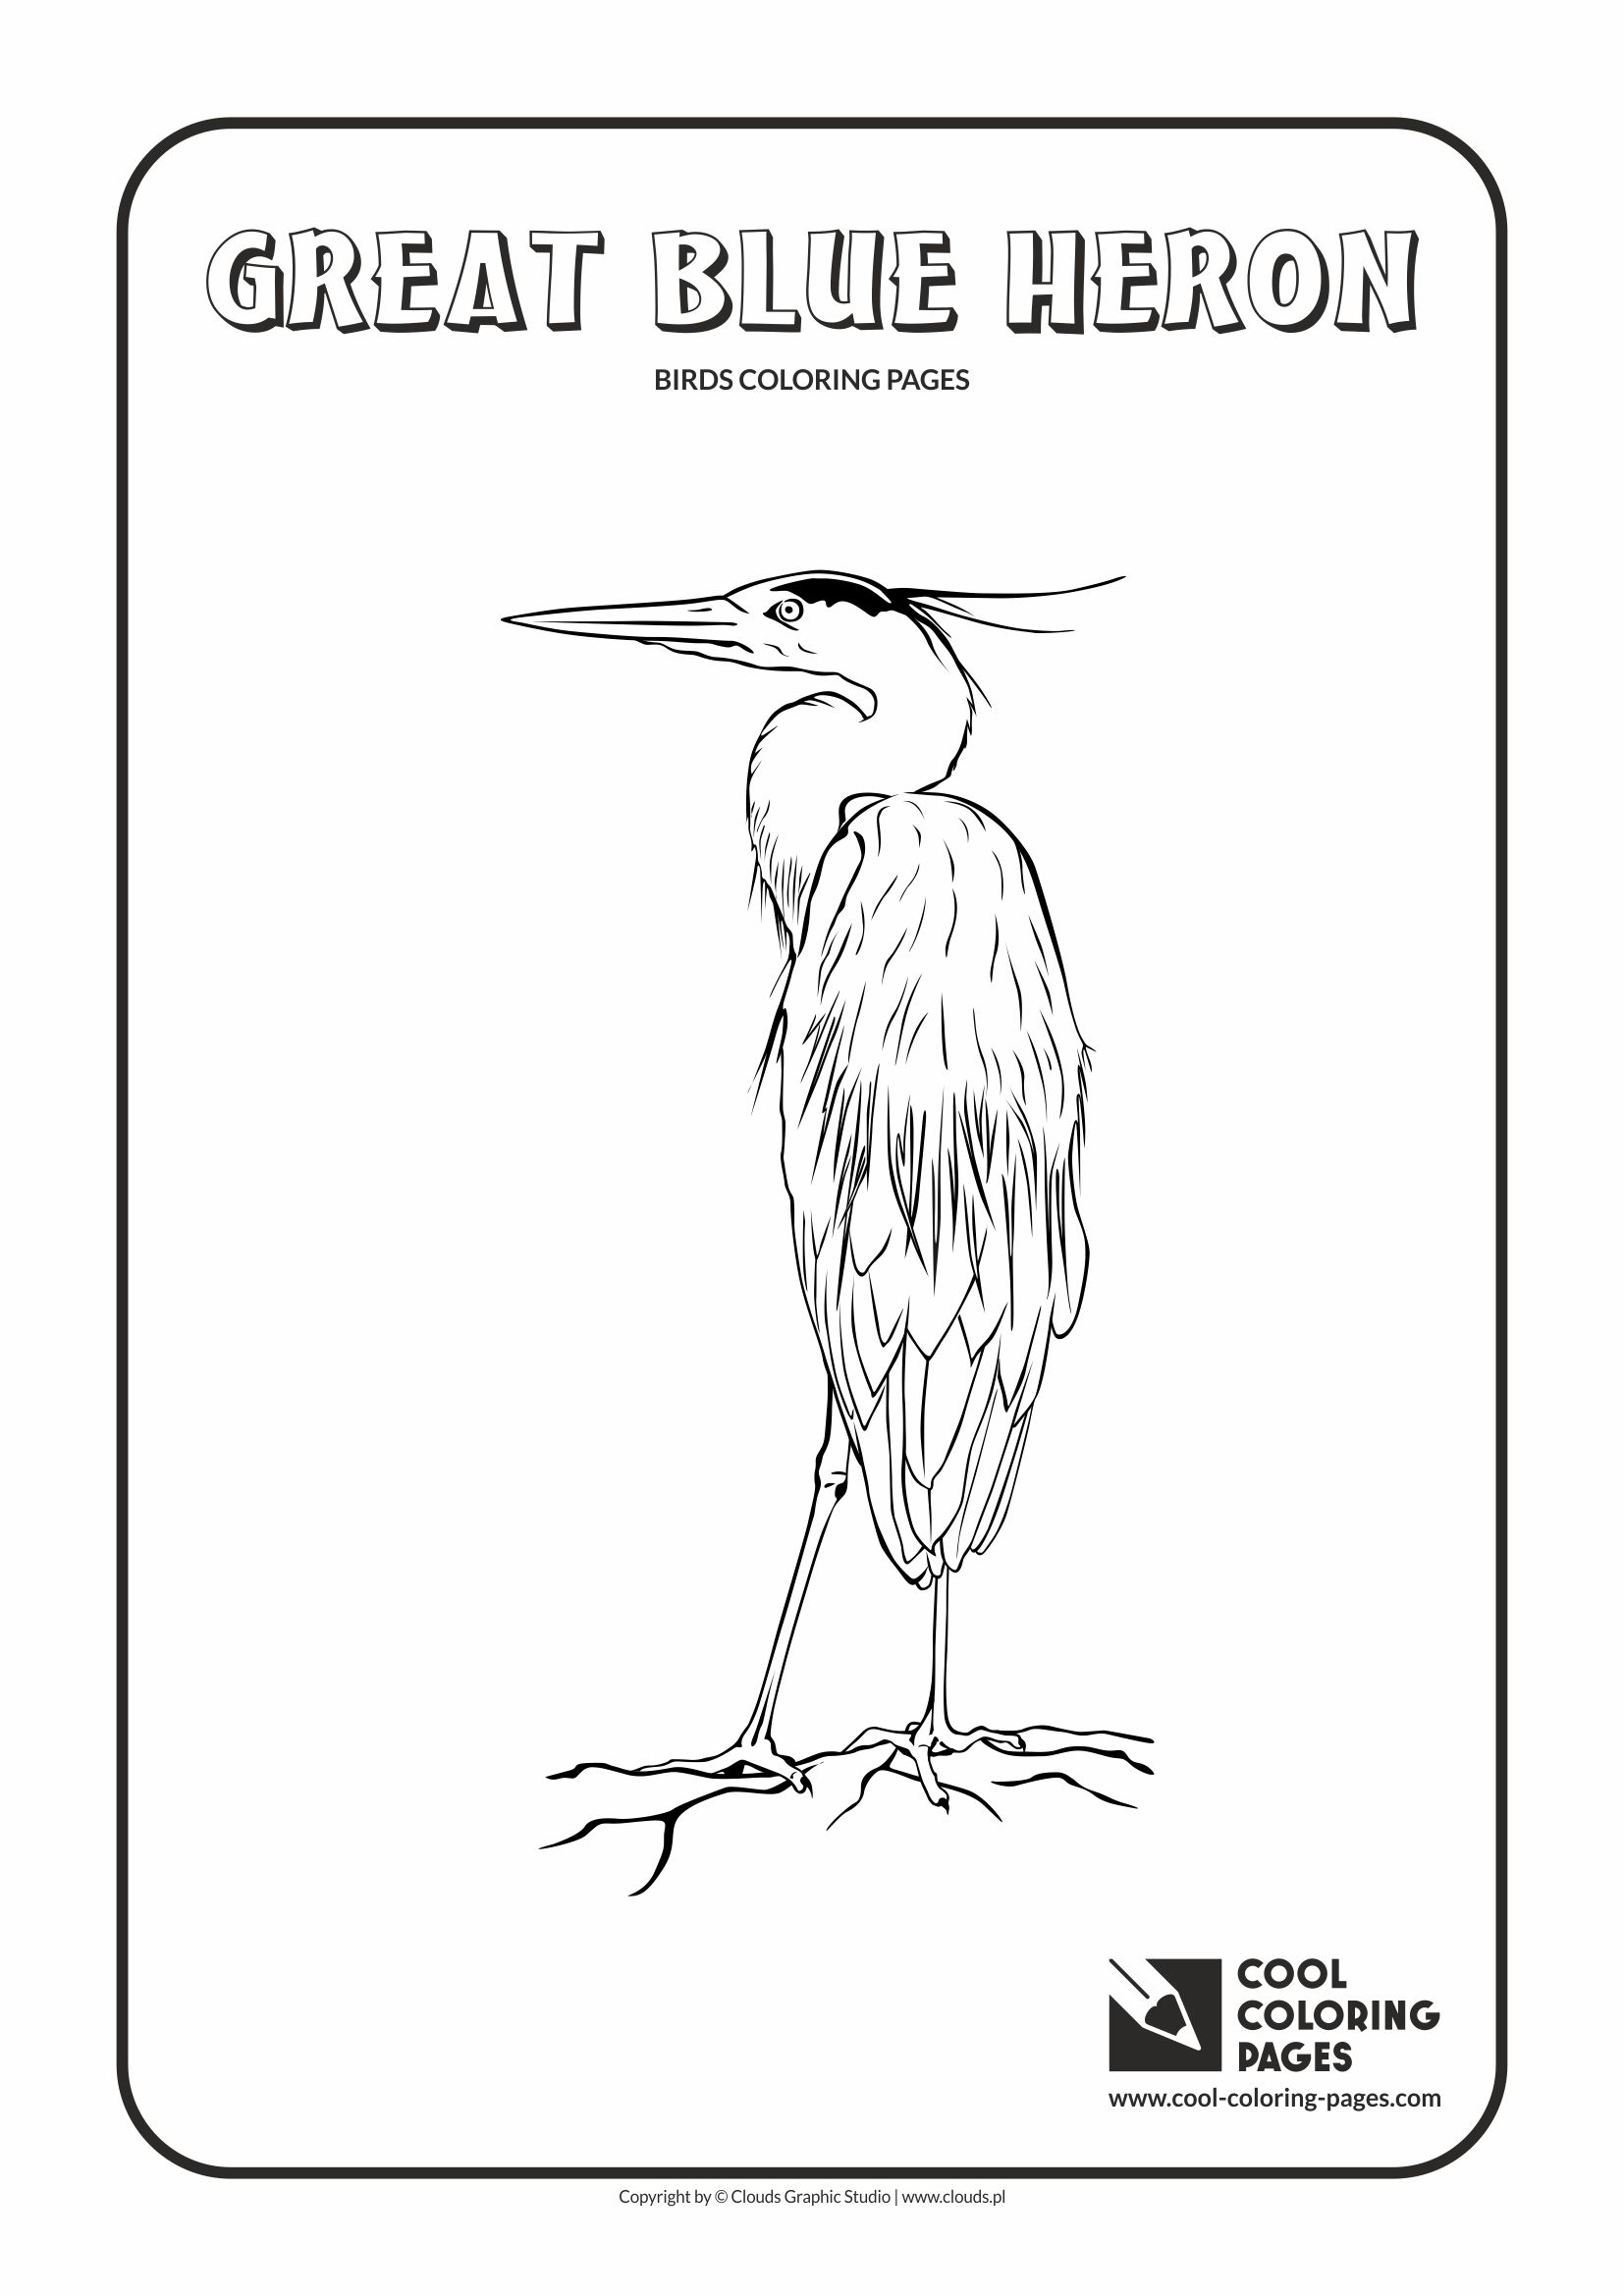 Cool Coloring Pages Birds coloring pages - Cool Coloring Pages ...